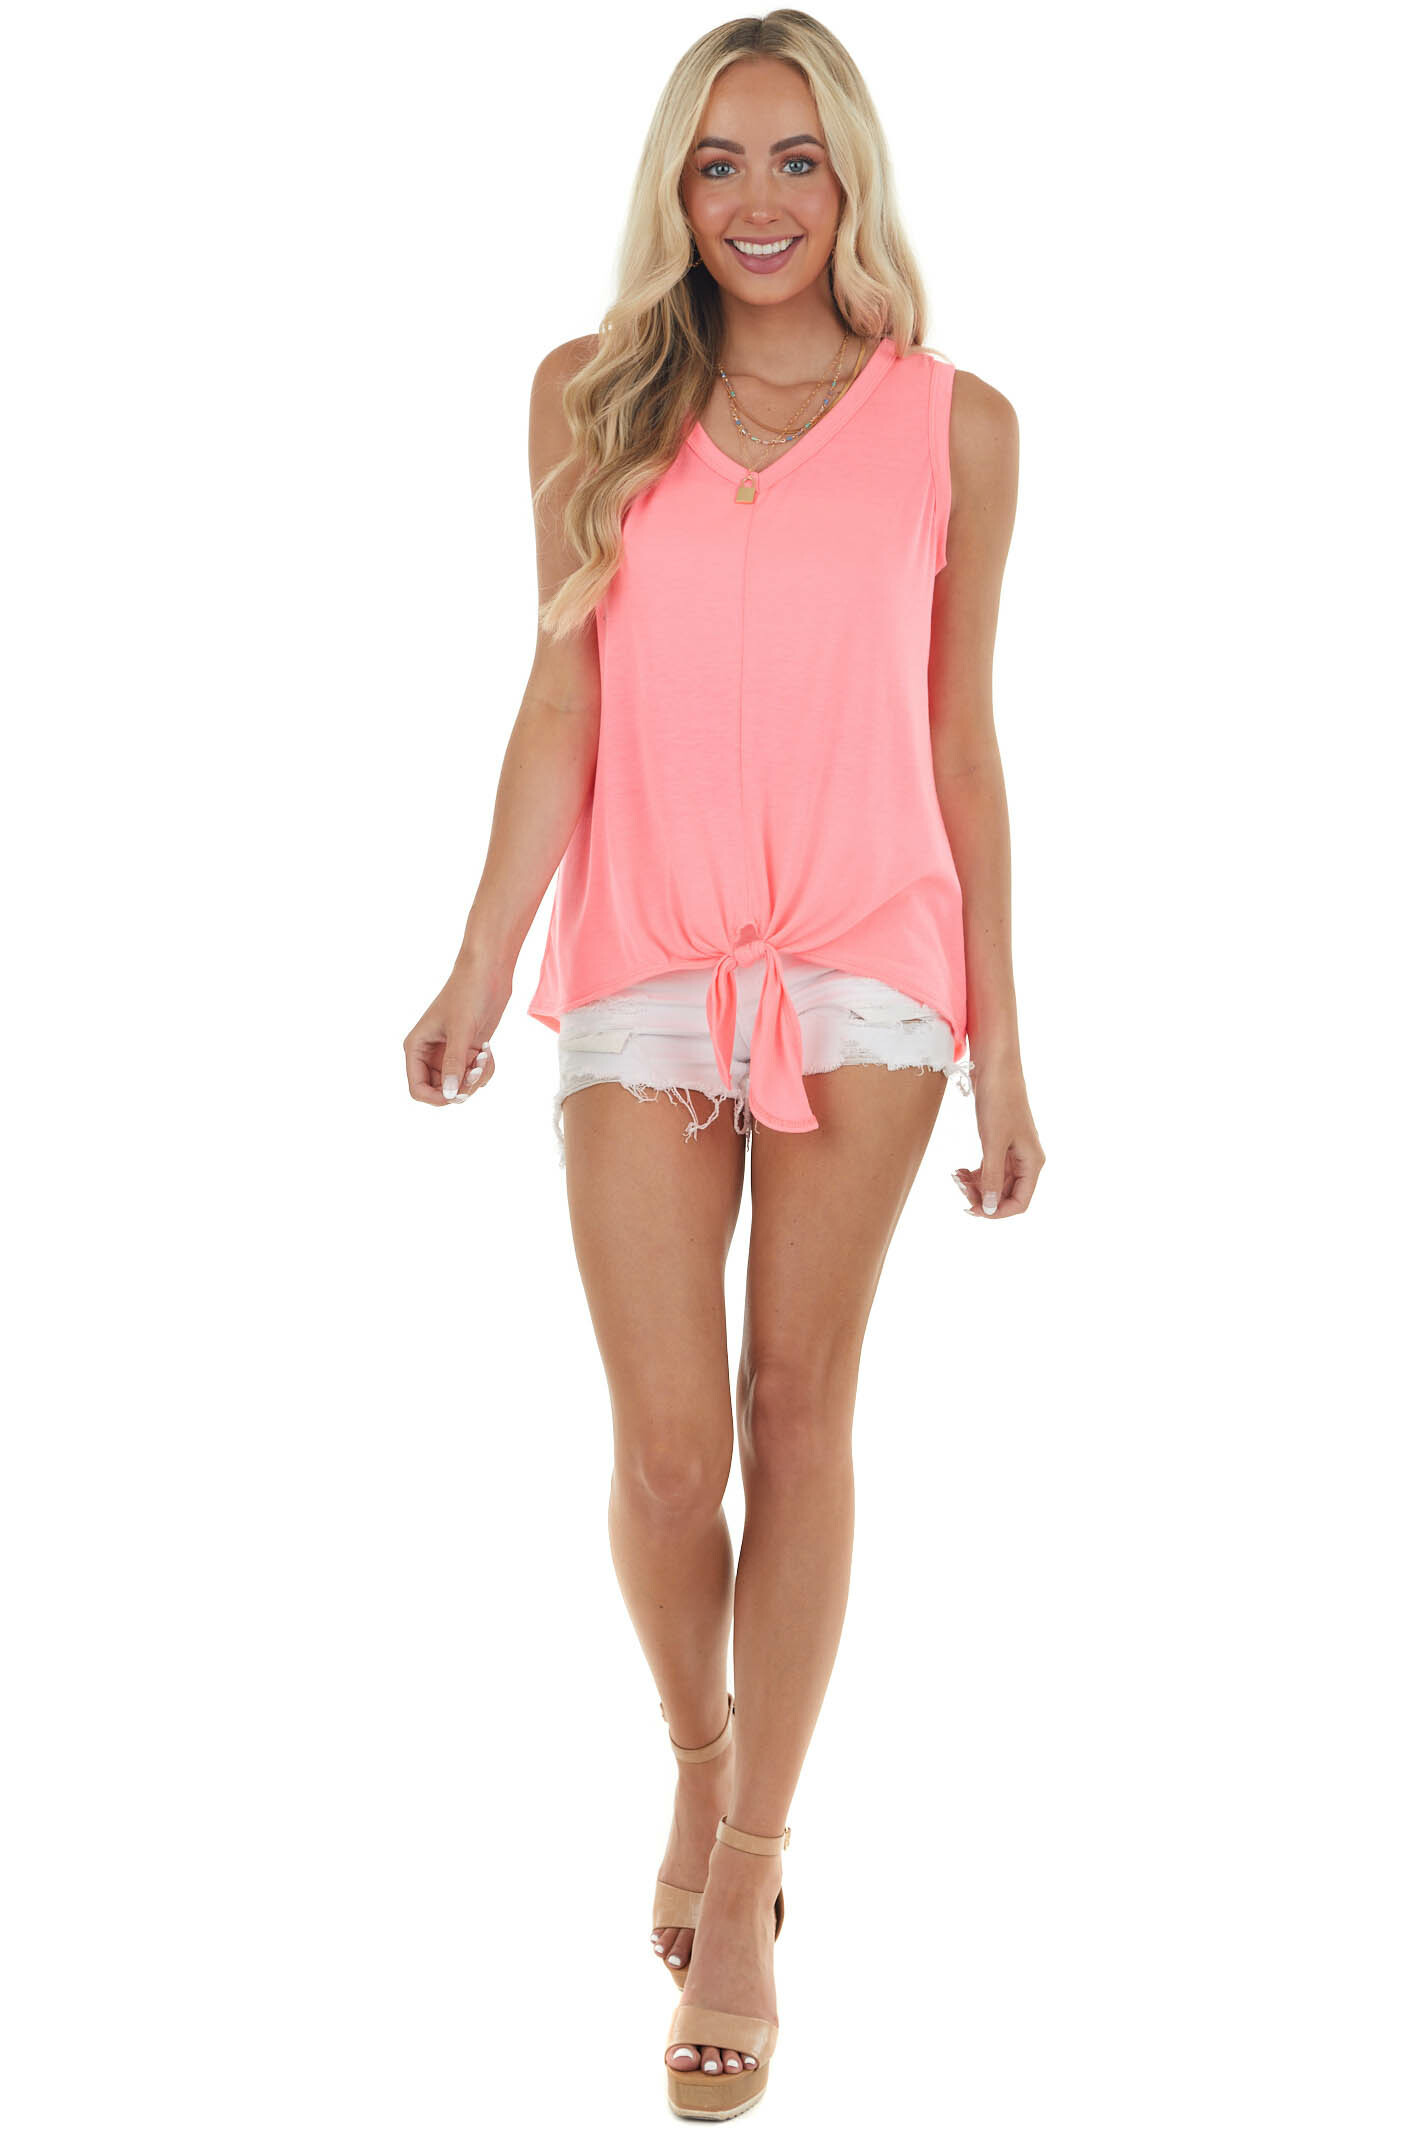 Neon Pink Knit Tank Top with Front Tie Detail